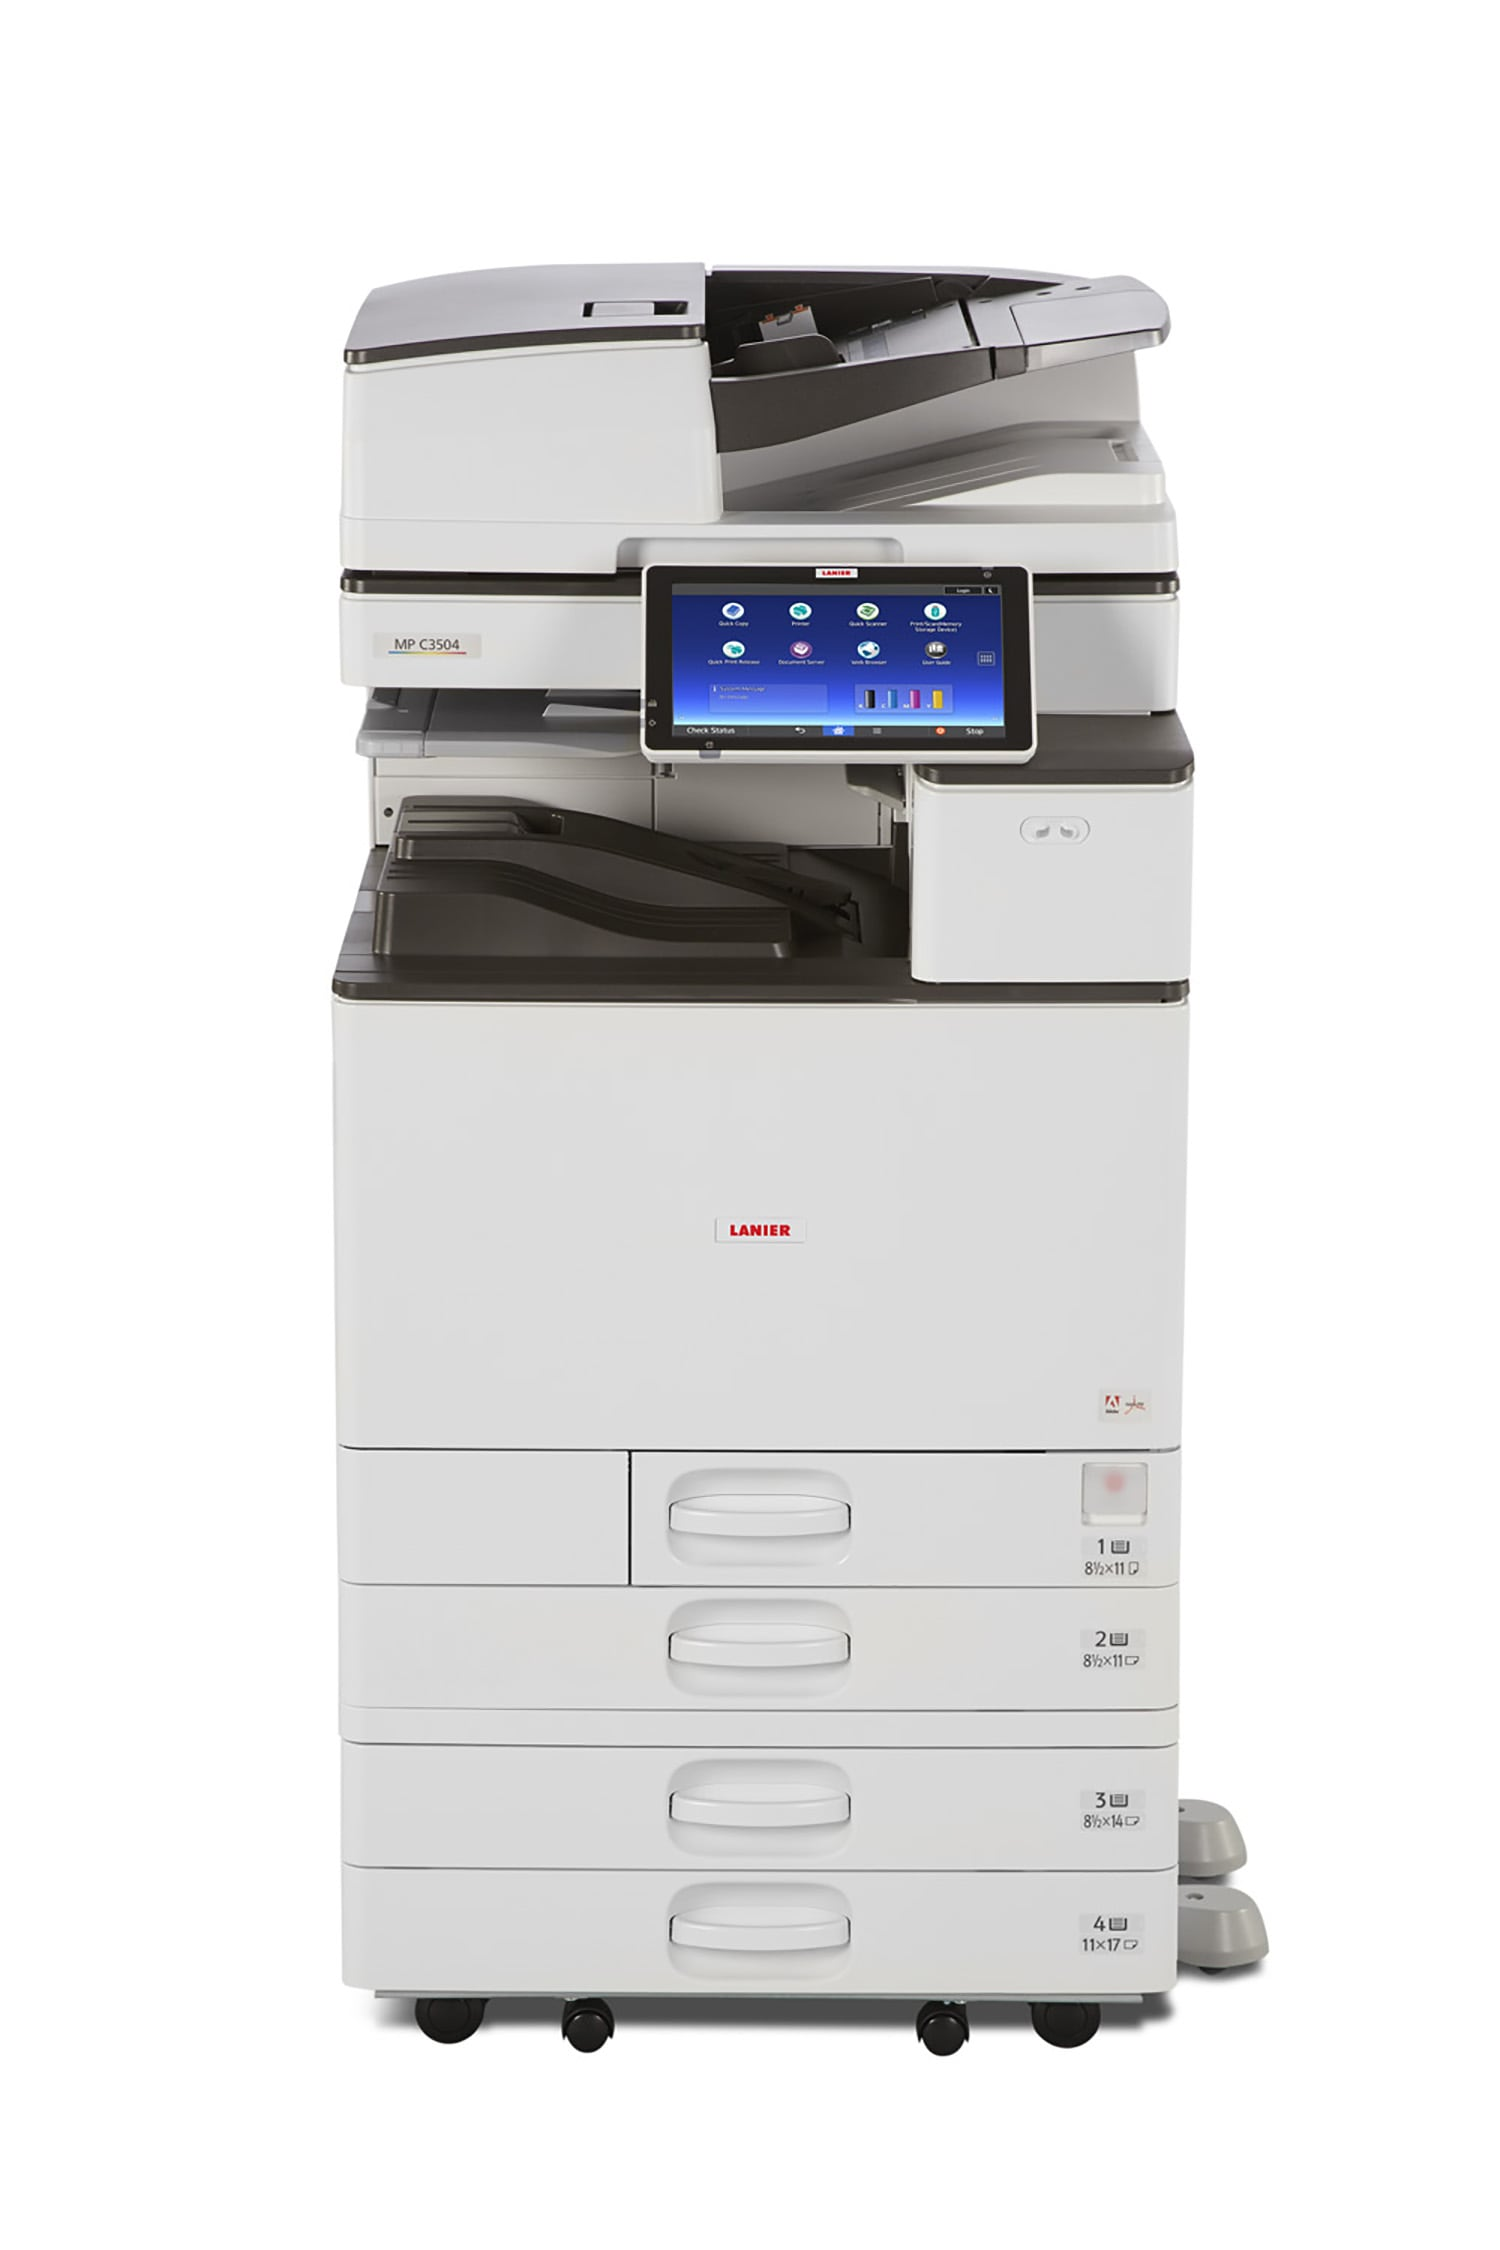 Ricoh MPC2004 colour multifunction printer